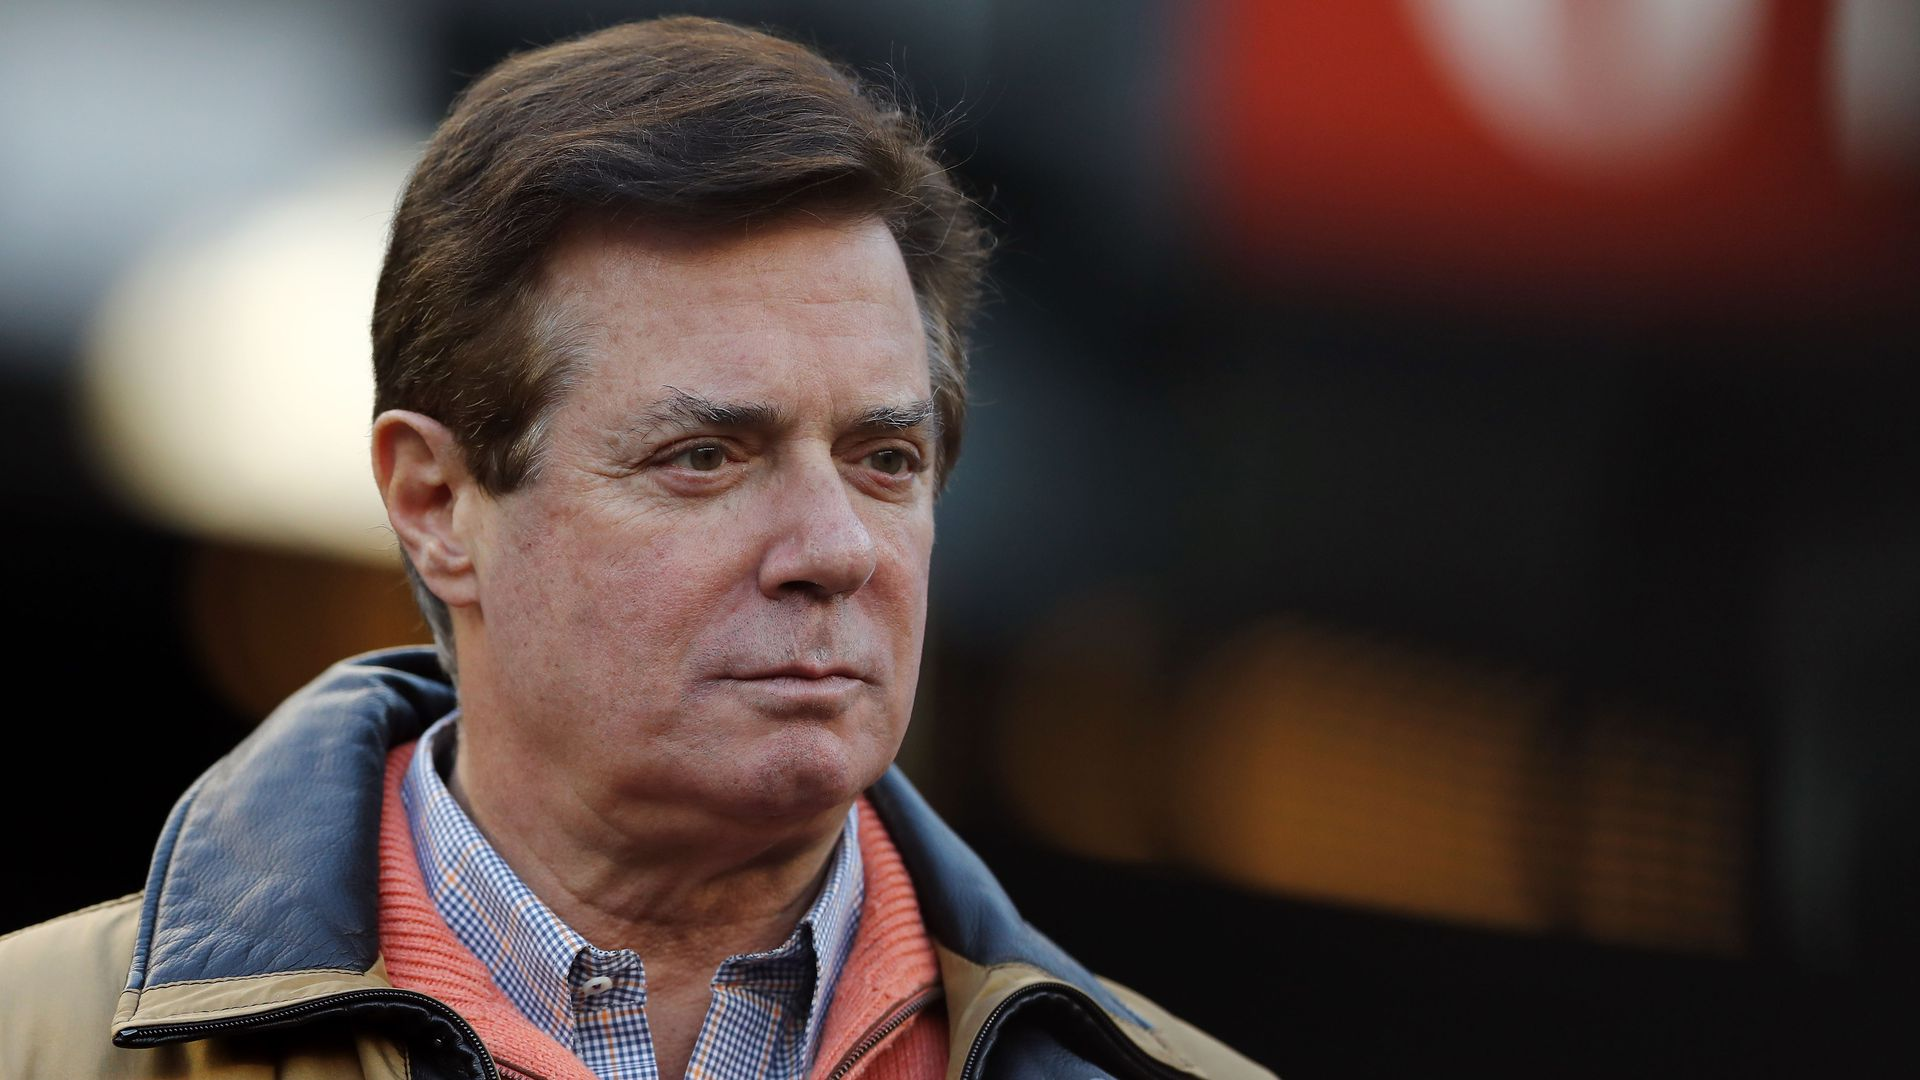 A closeup of Paul Manafort wearing casual clothes